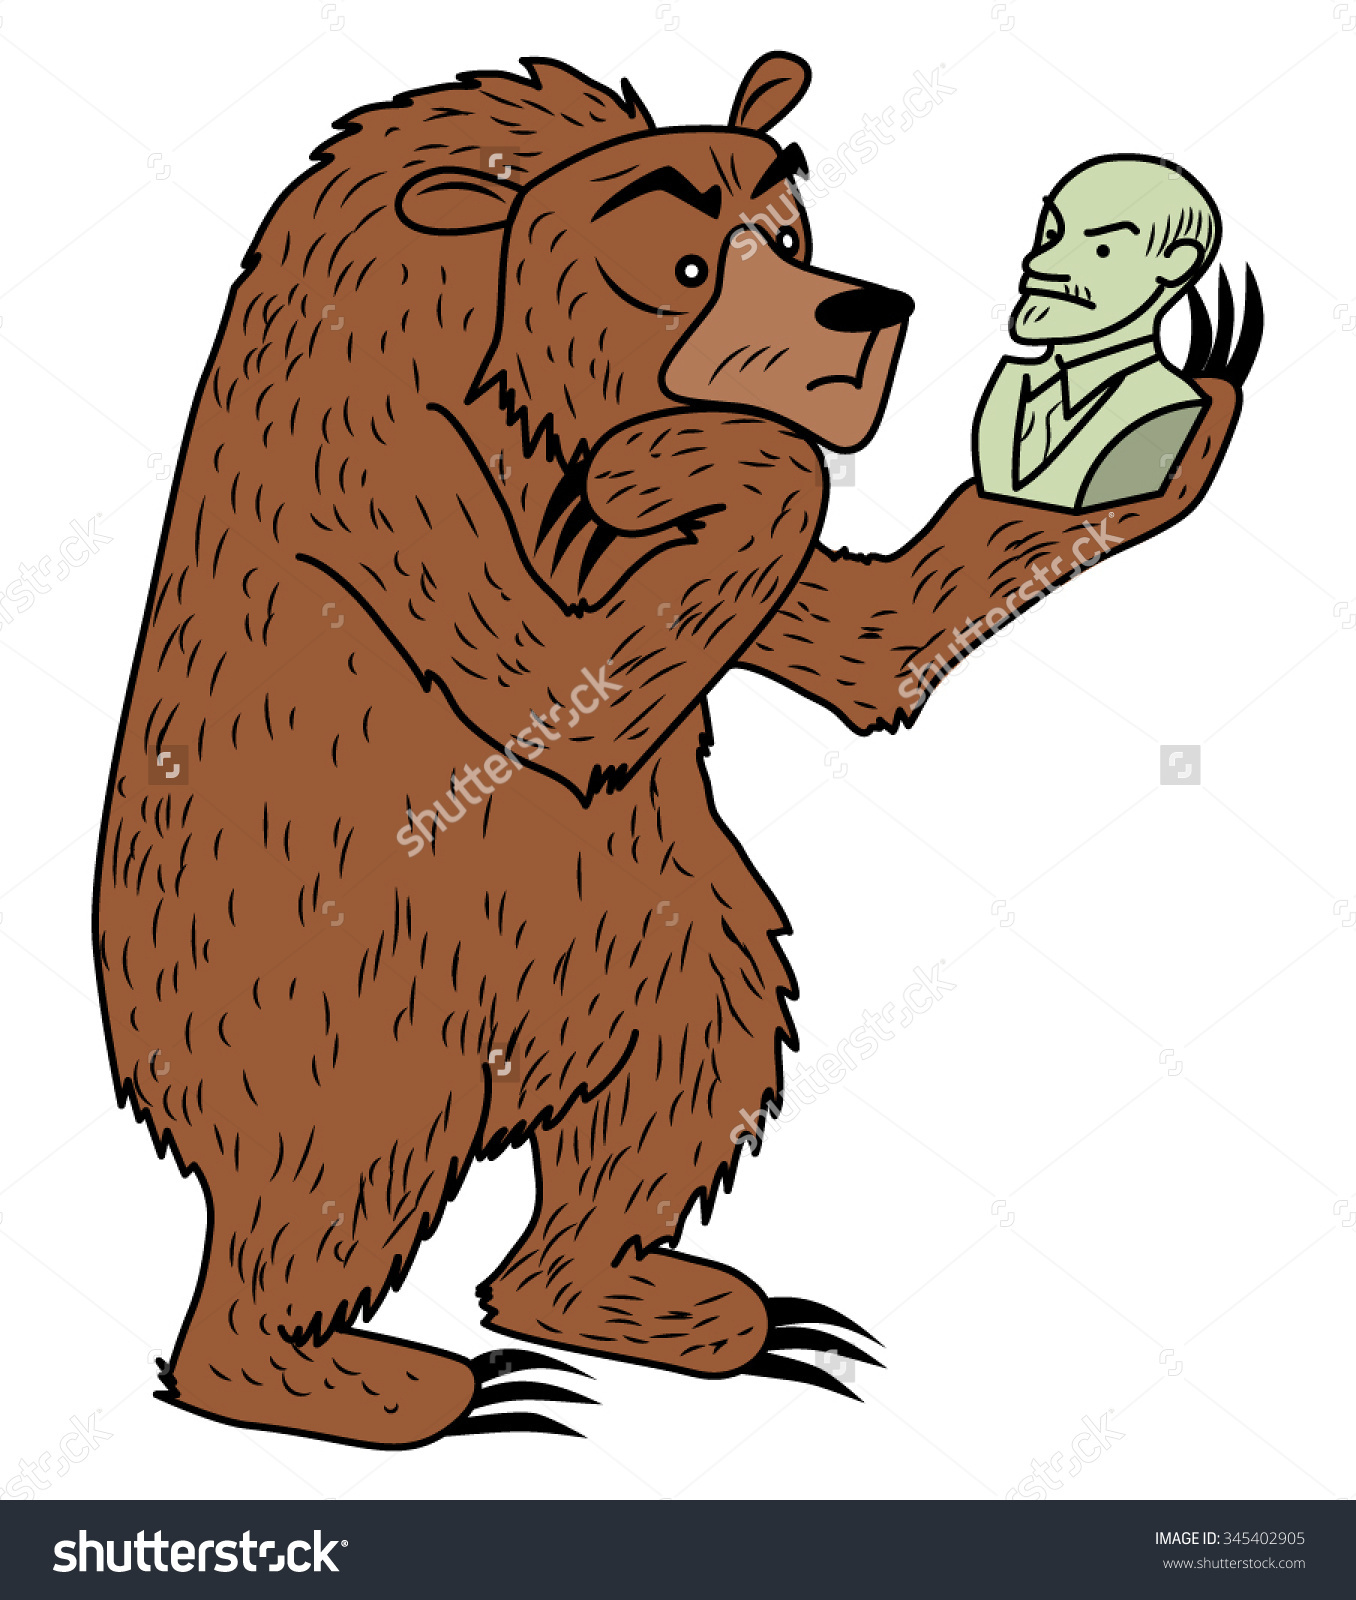 Russian Bear Bust Lenin Playing Hamlet Stock Vector 345402905.